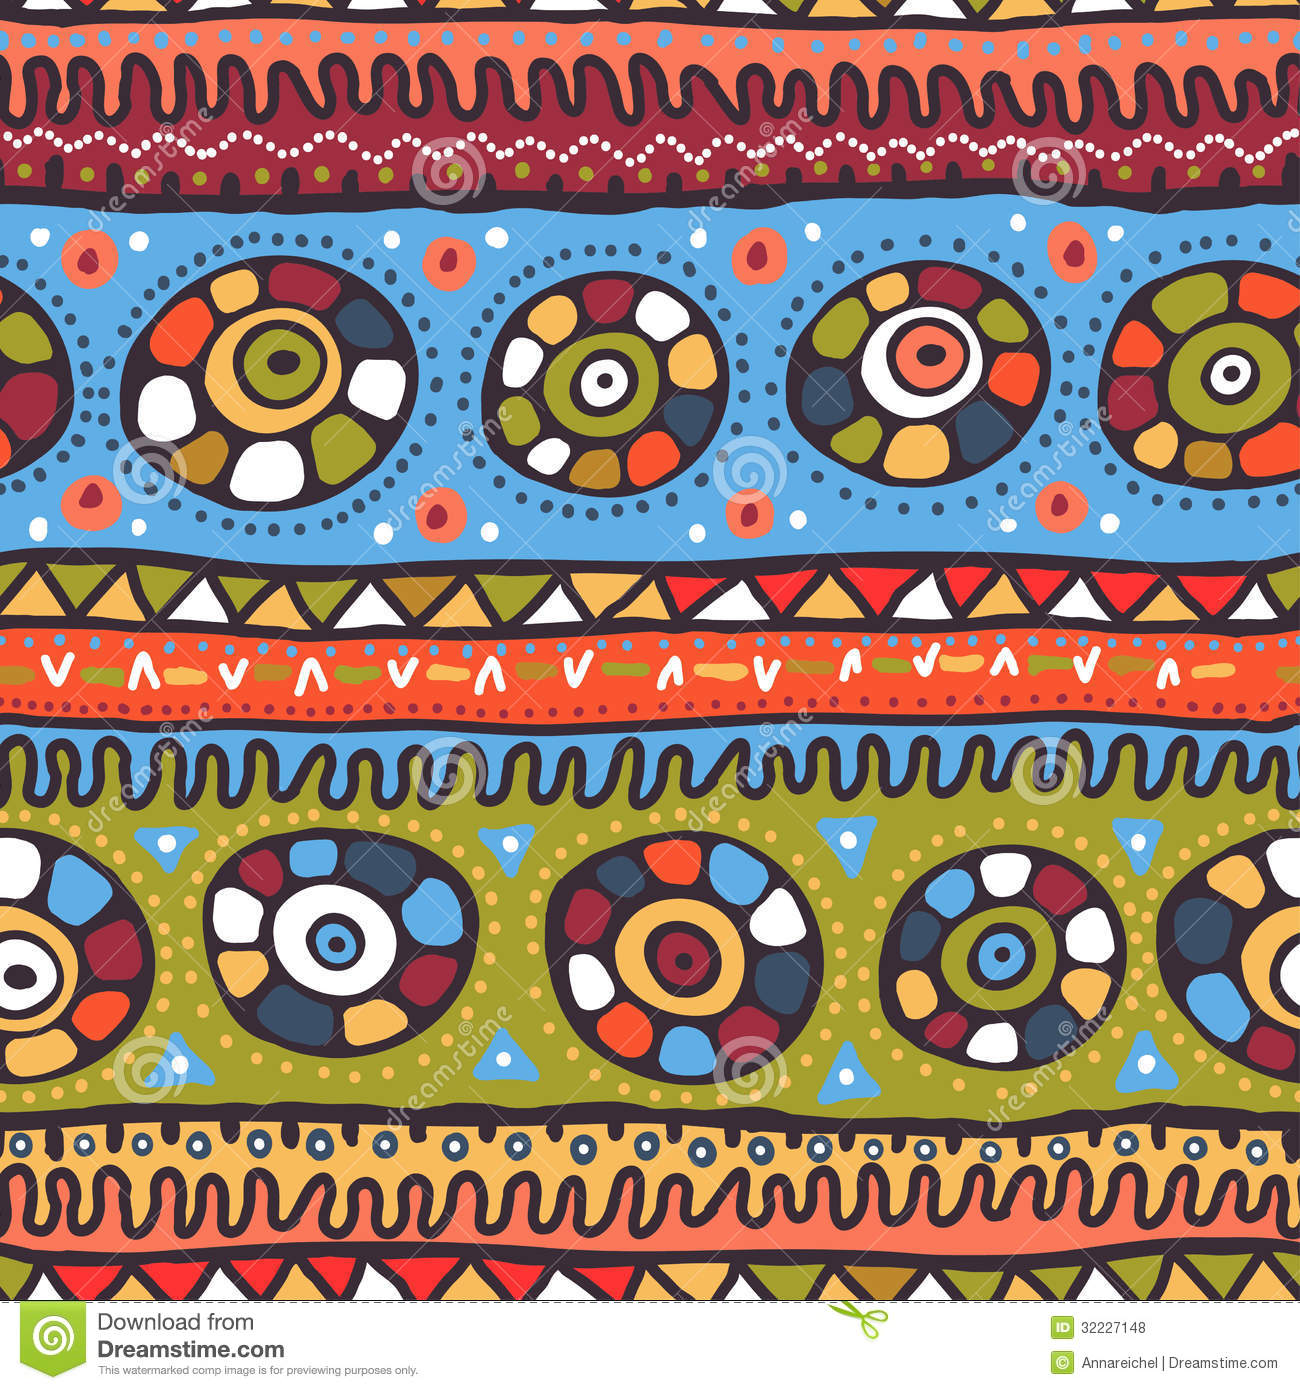 ... abstract seamless pattern in African style. Endless tribal background African Designs And Patterns